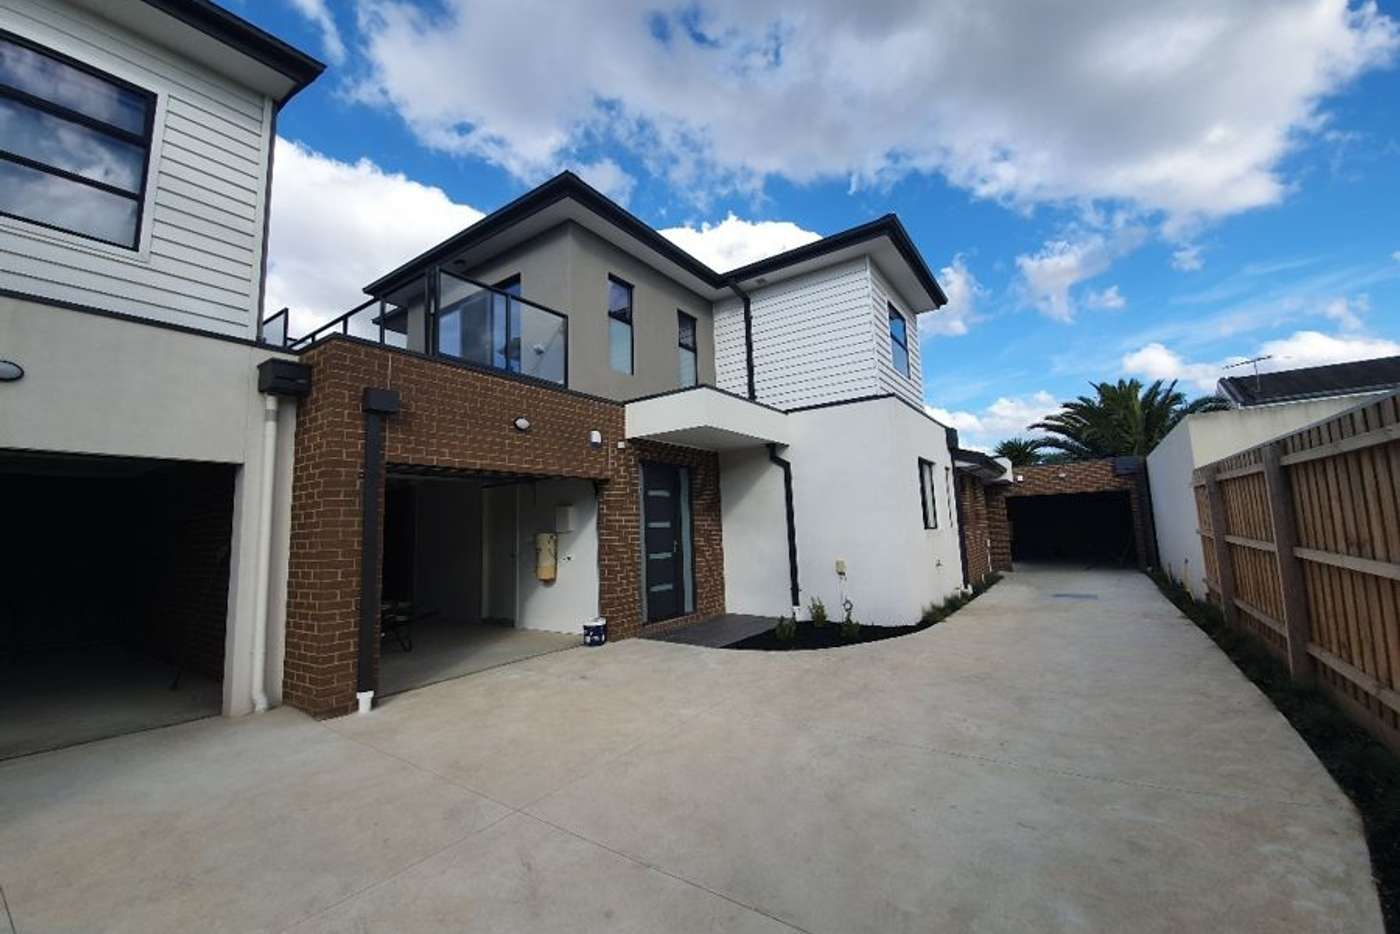 Main view of Homely house listing, 2 & 3/59 Munro Street, Coburg VIC 3058